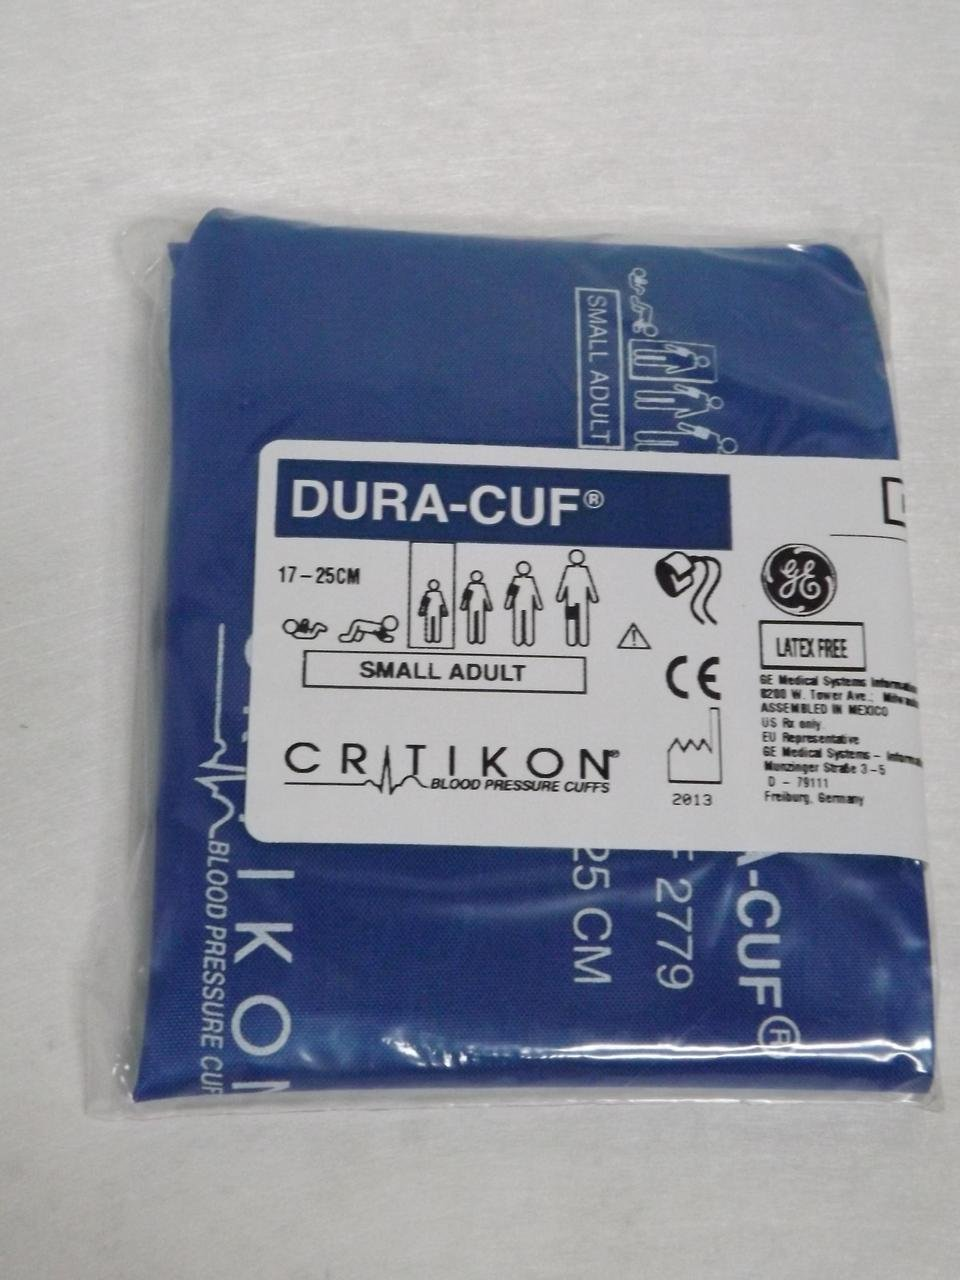 GE Healthcare 2779 Critikon Dura-Cuf Blood Pressure Cuff, 2-Tube Screw Connector, Small Adult, Royal Blue by GE (Image #3)